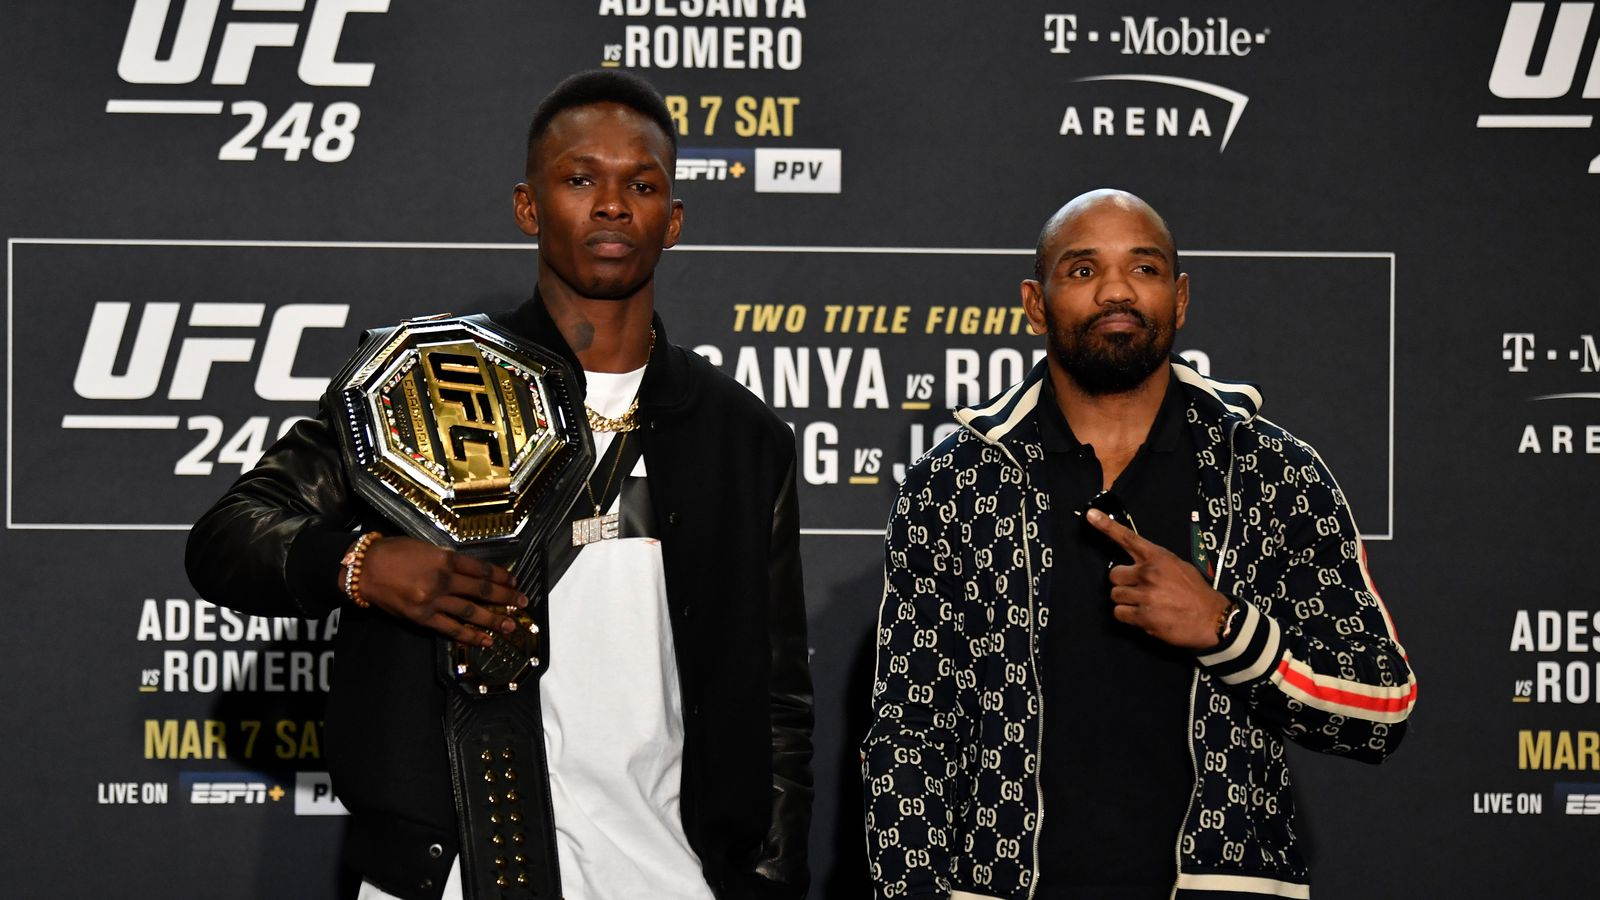 UFC 248 Start Time, TV Schedule, Who Is Fighting Tonight!